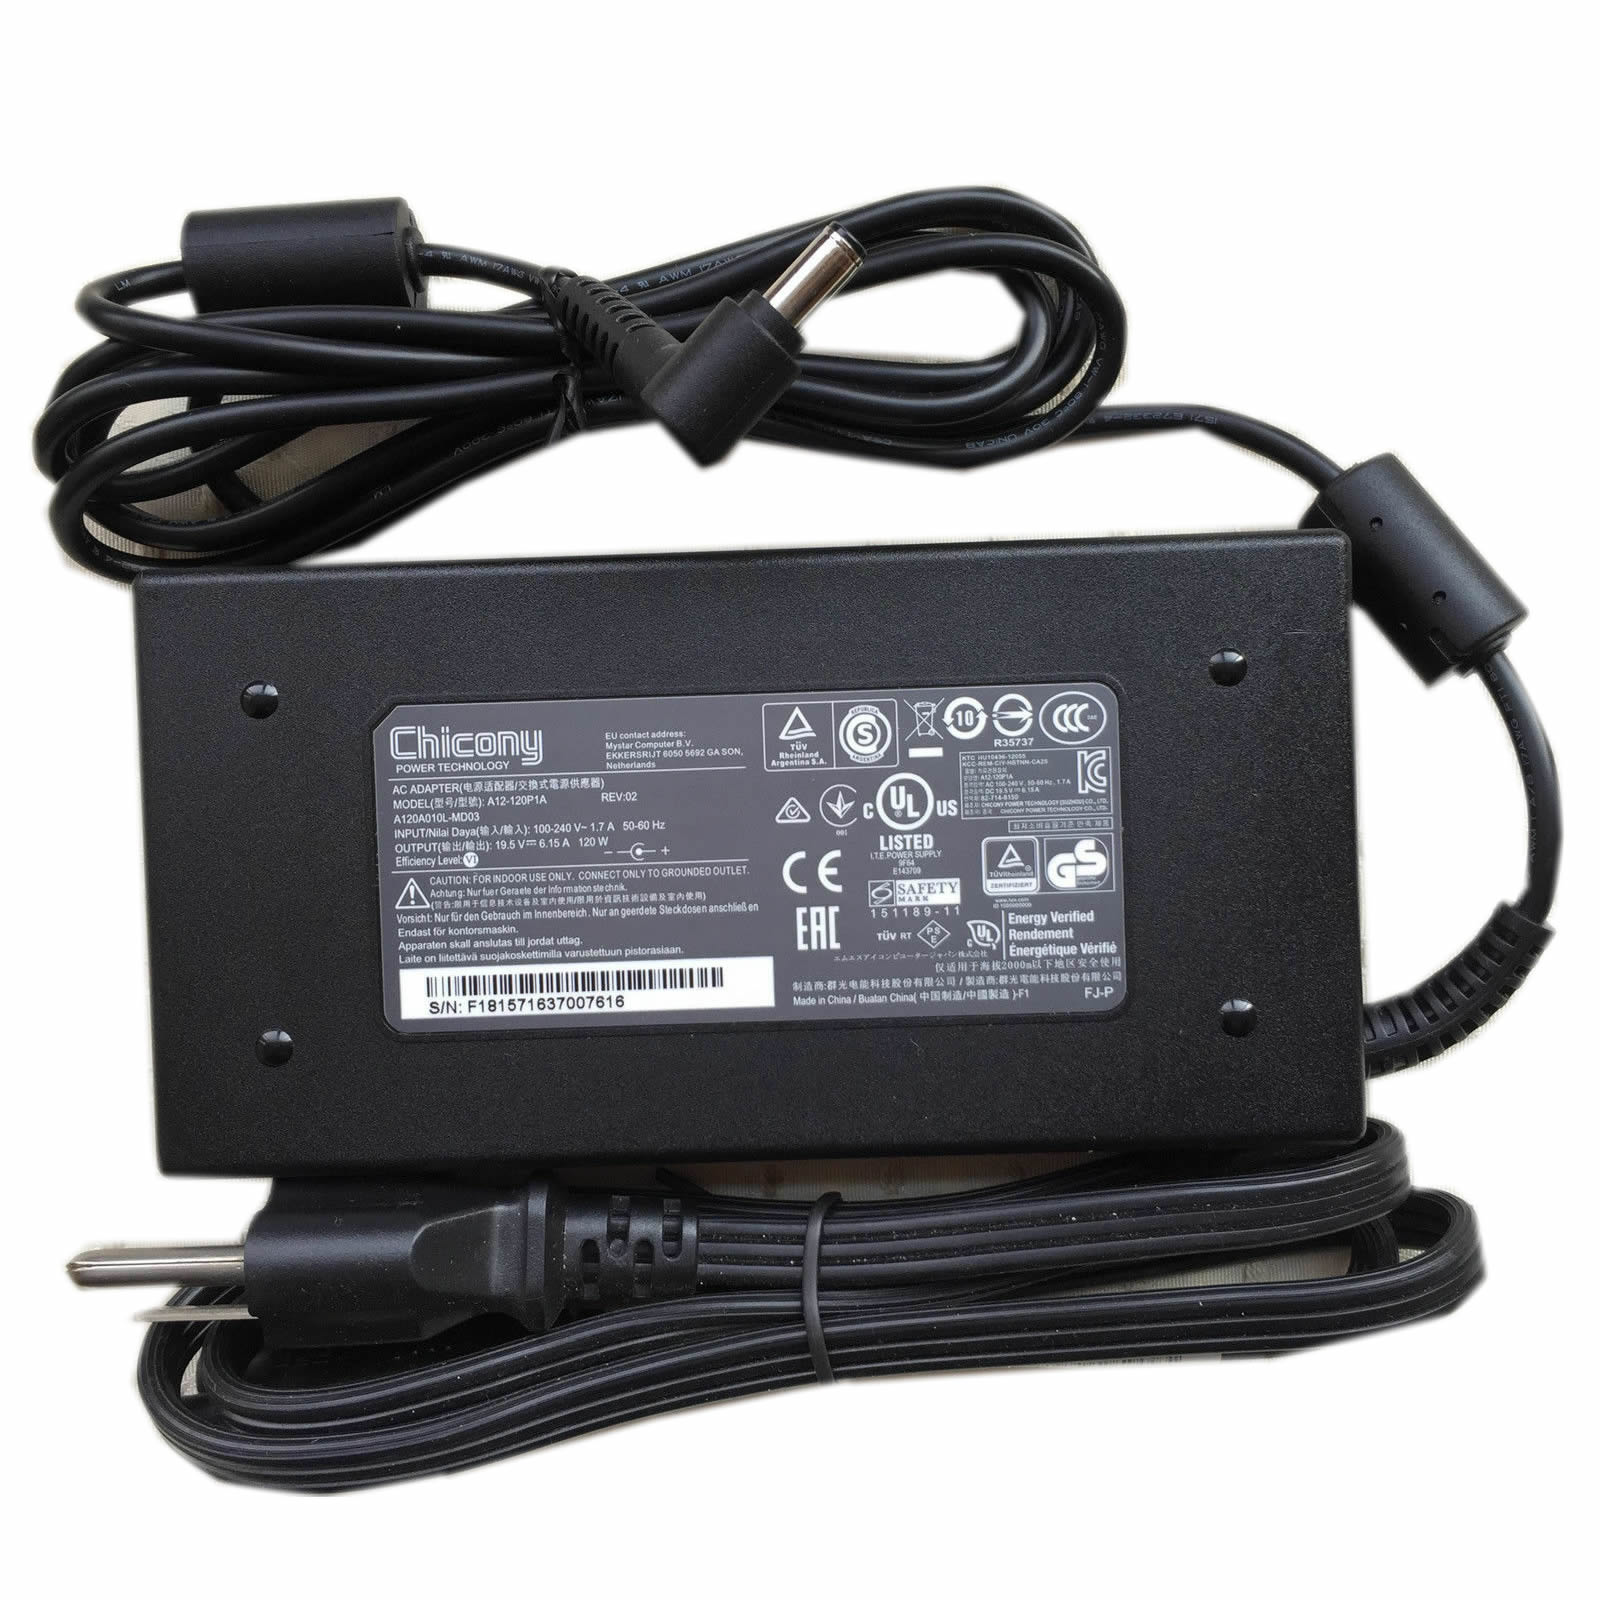 Chicony A12-120P1A A120A010L ADP-120MH D adaptateur chargeur 19.5V 6.15A 120W alimentation originale pour MSI GE70 Apache Pro-247 GE60 GE70 GP70 Gaming Notebook séries